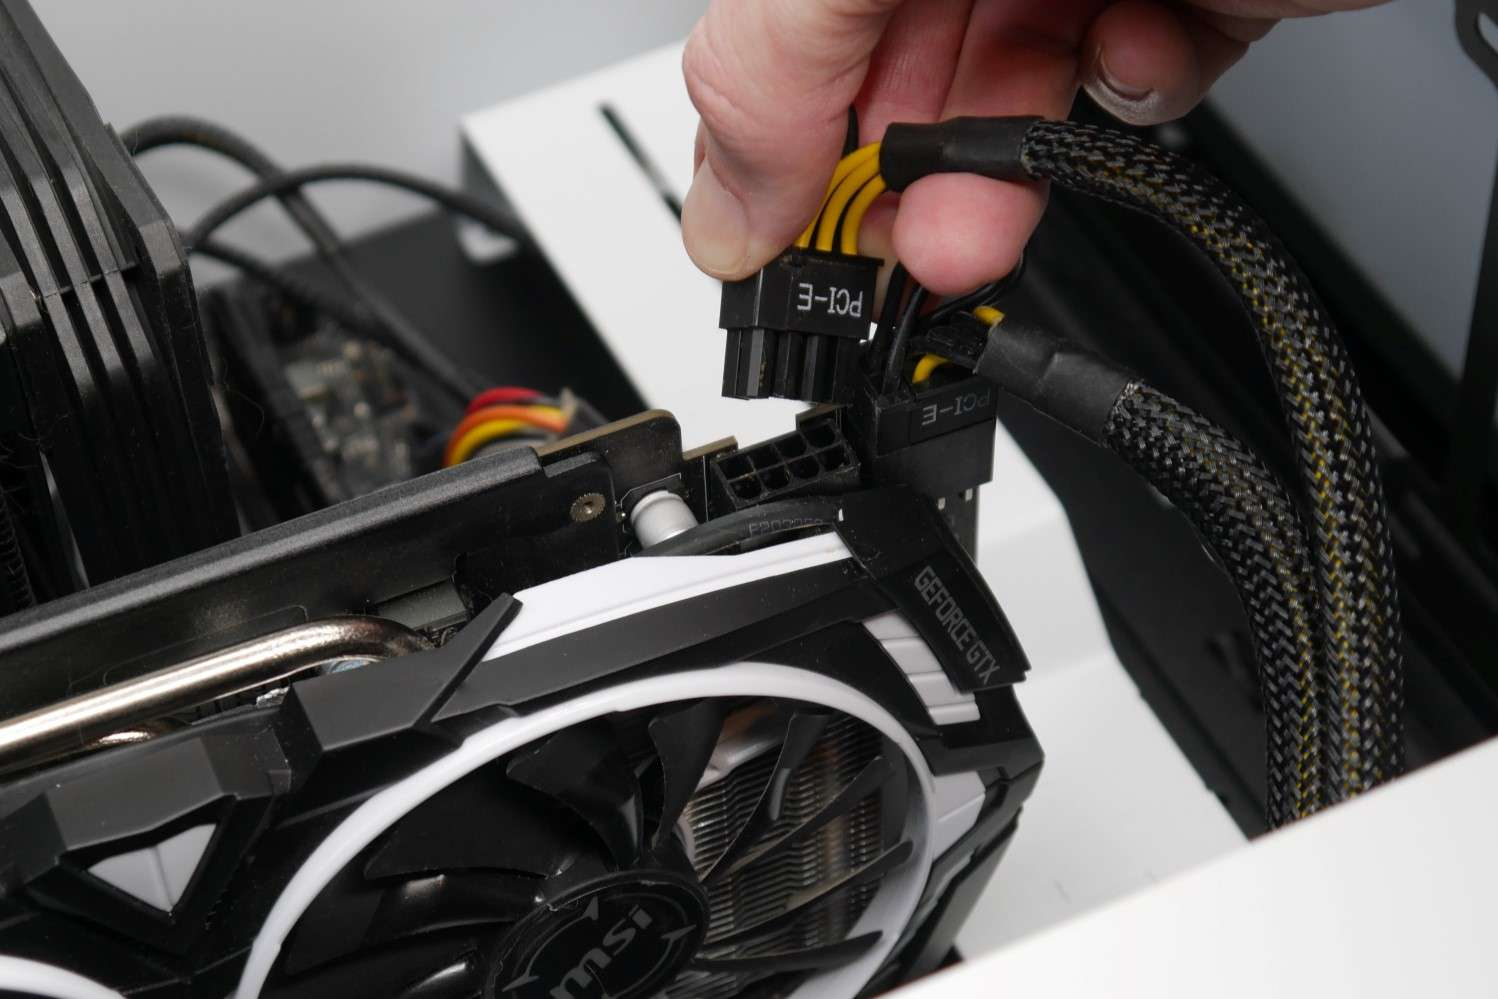 A photo showing a graphics card's PCIe power connector being disconnected